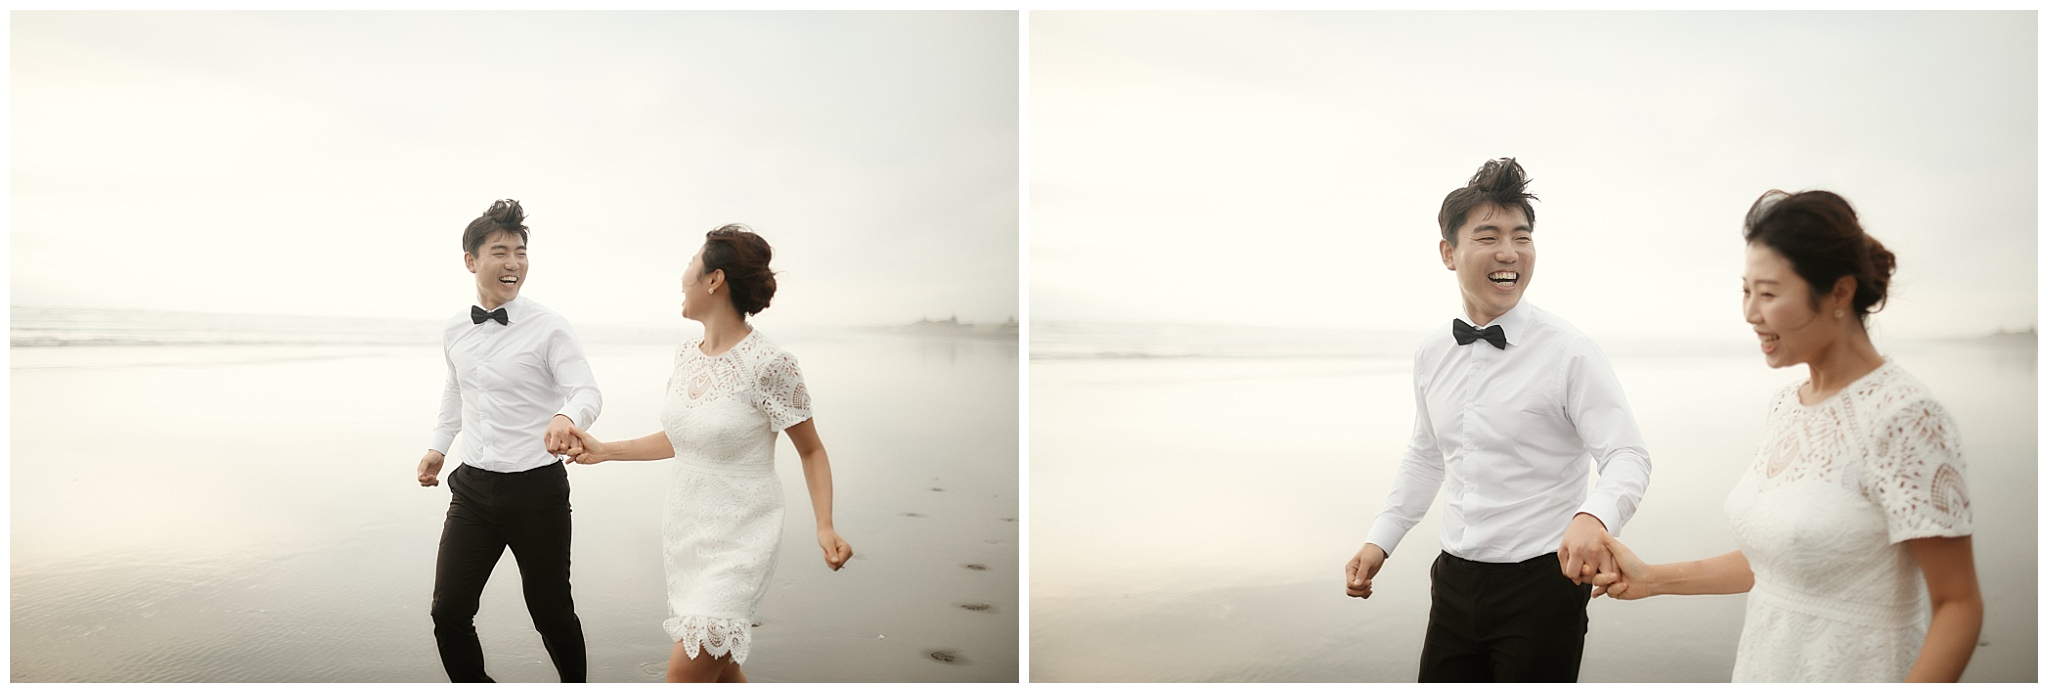 Auckland New Zealand Prewedding Photographer_0056.jpg